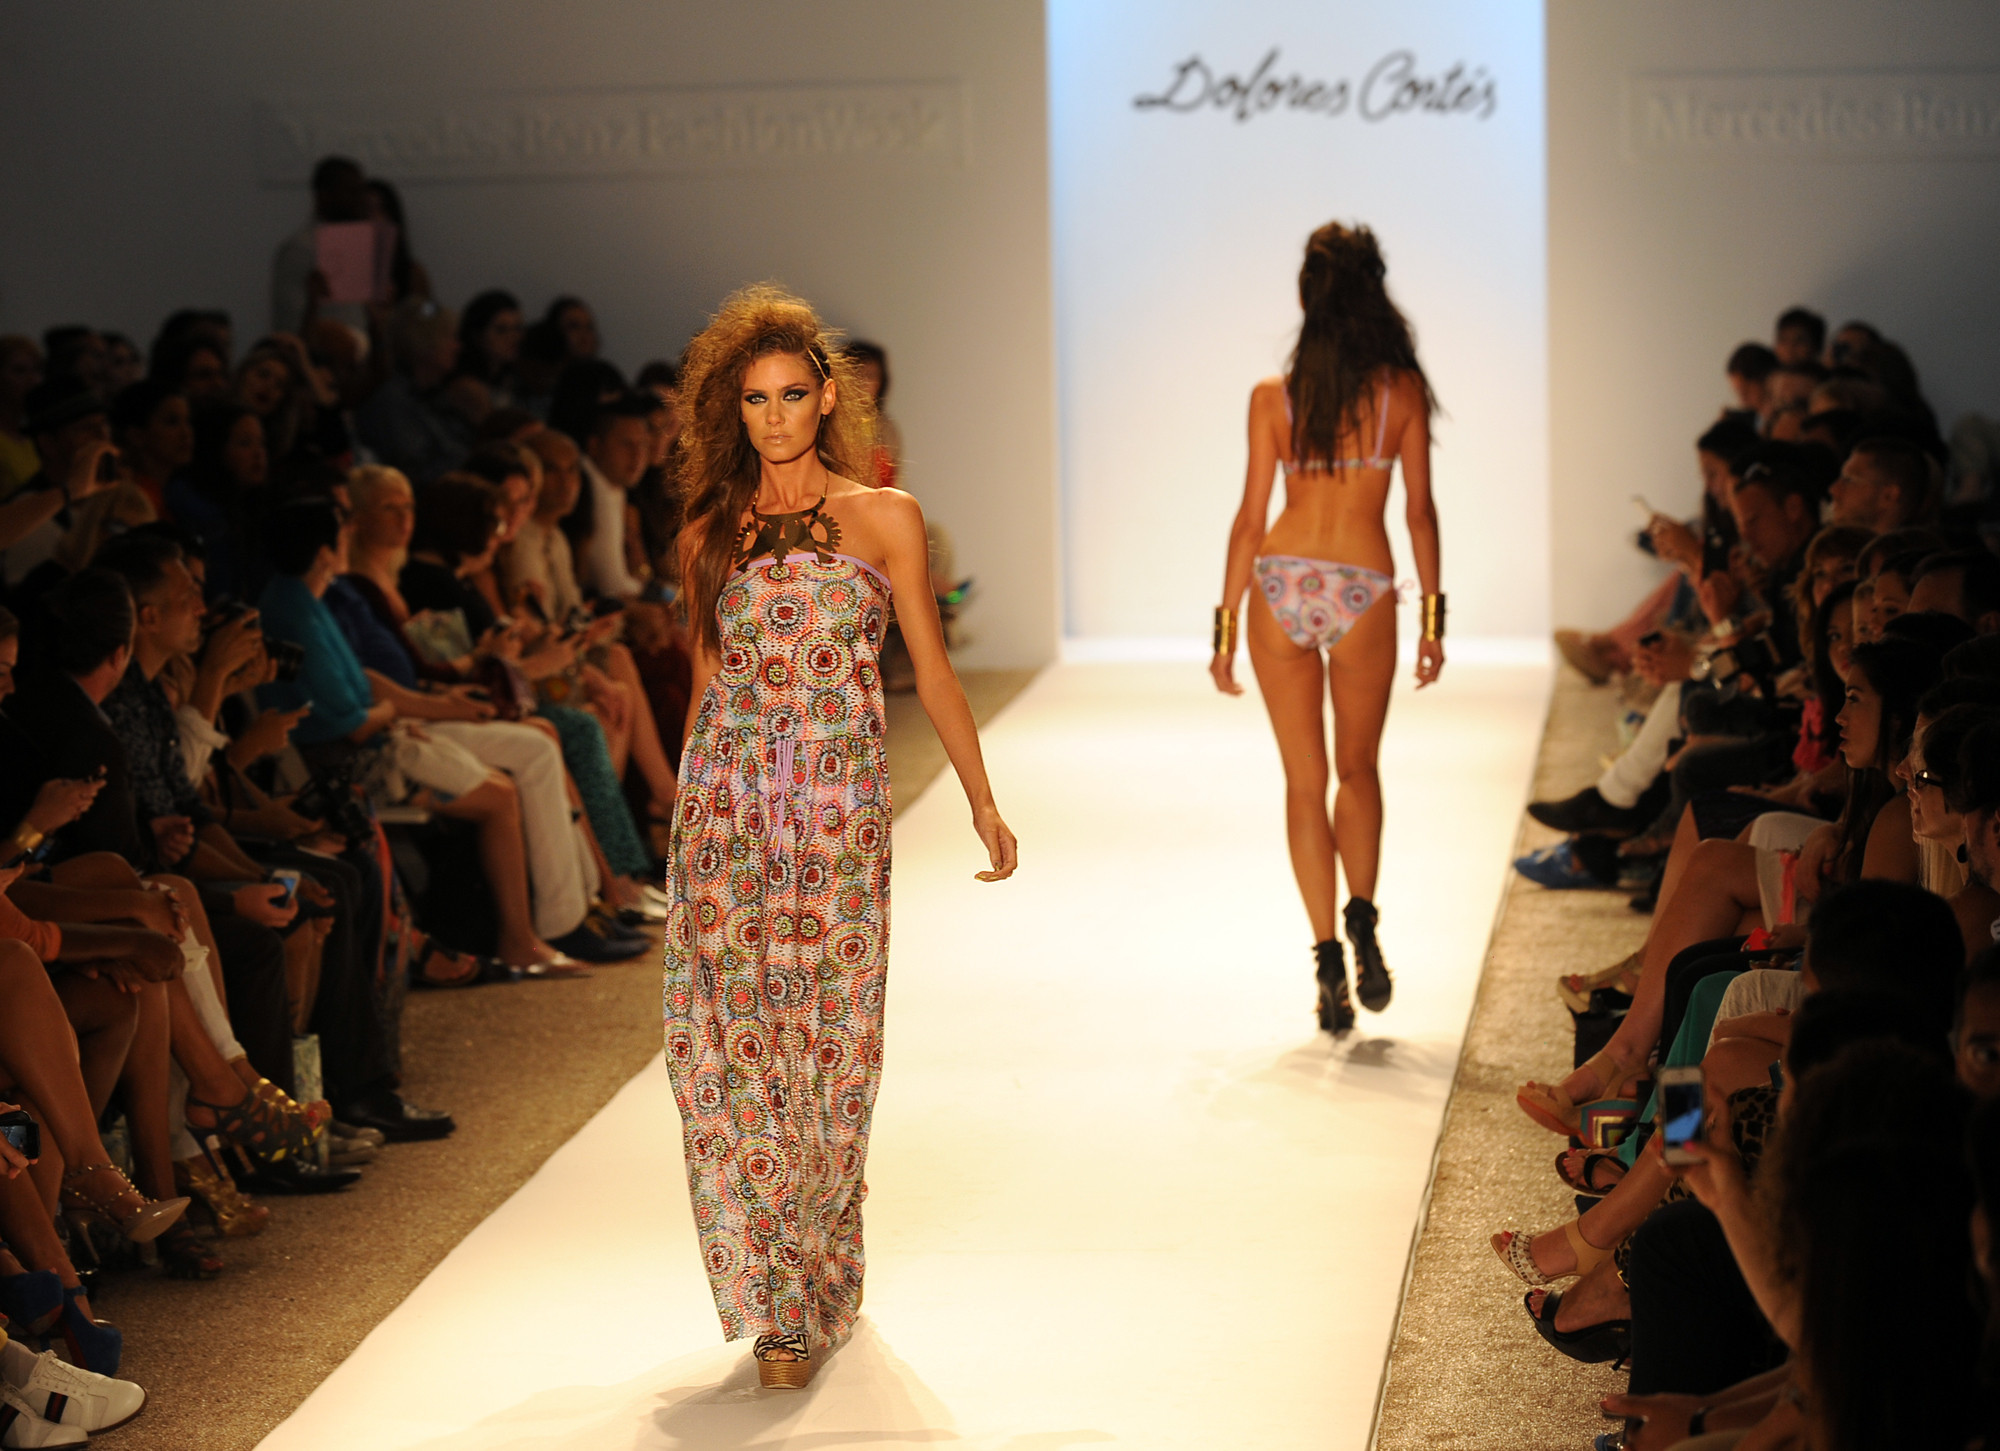 Miami Swim Week: The catwalk - Dolores Cortes